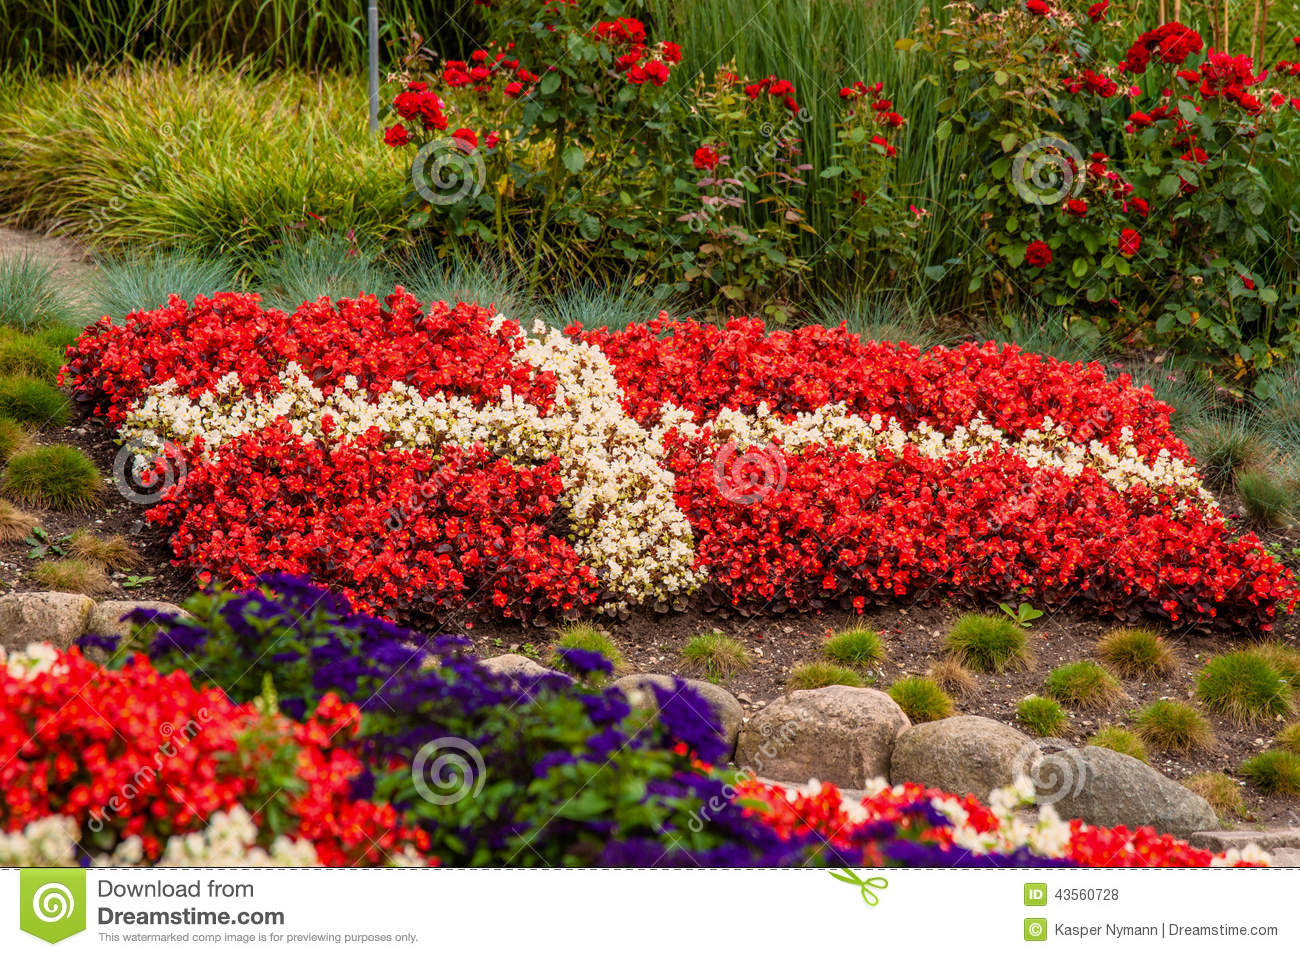 Danish flag made out of flowers stock photo image of cross flower garden with red and white flowers illustrating the danish flag mightylinksfo